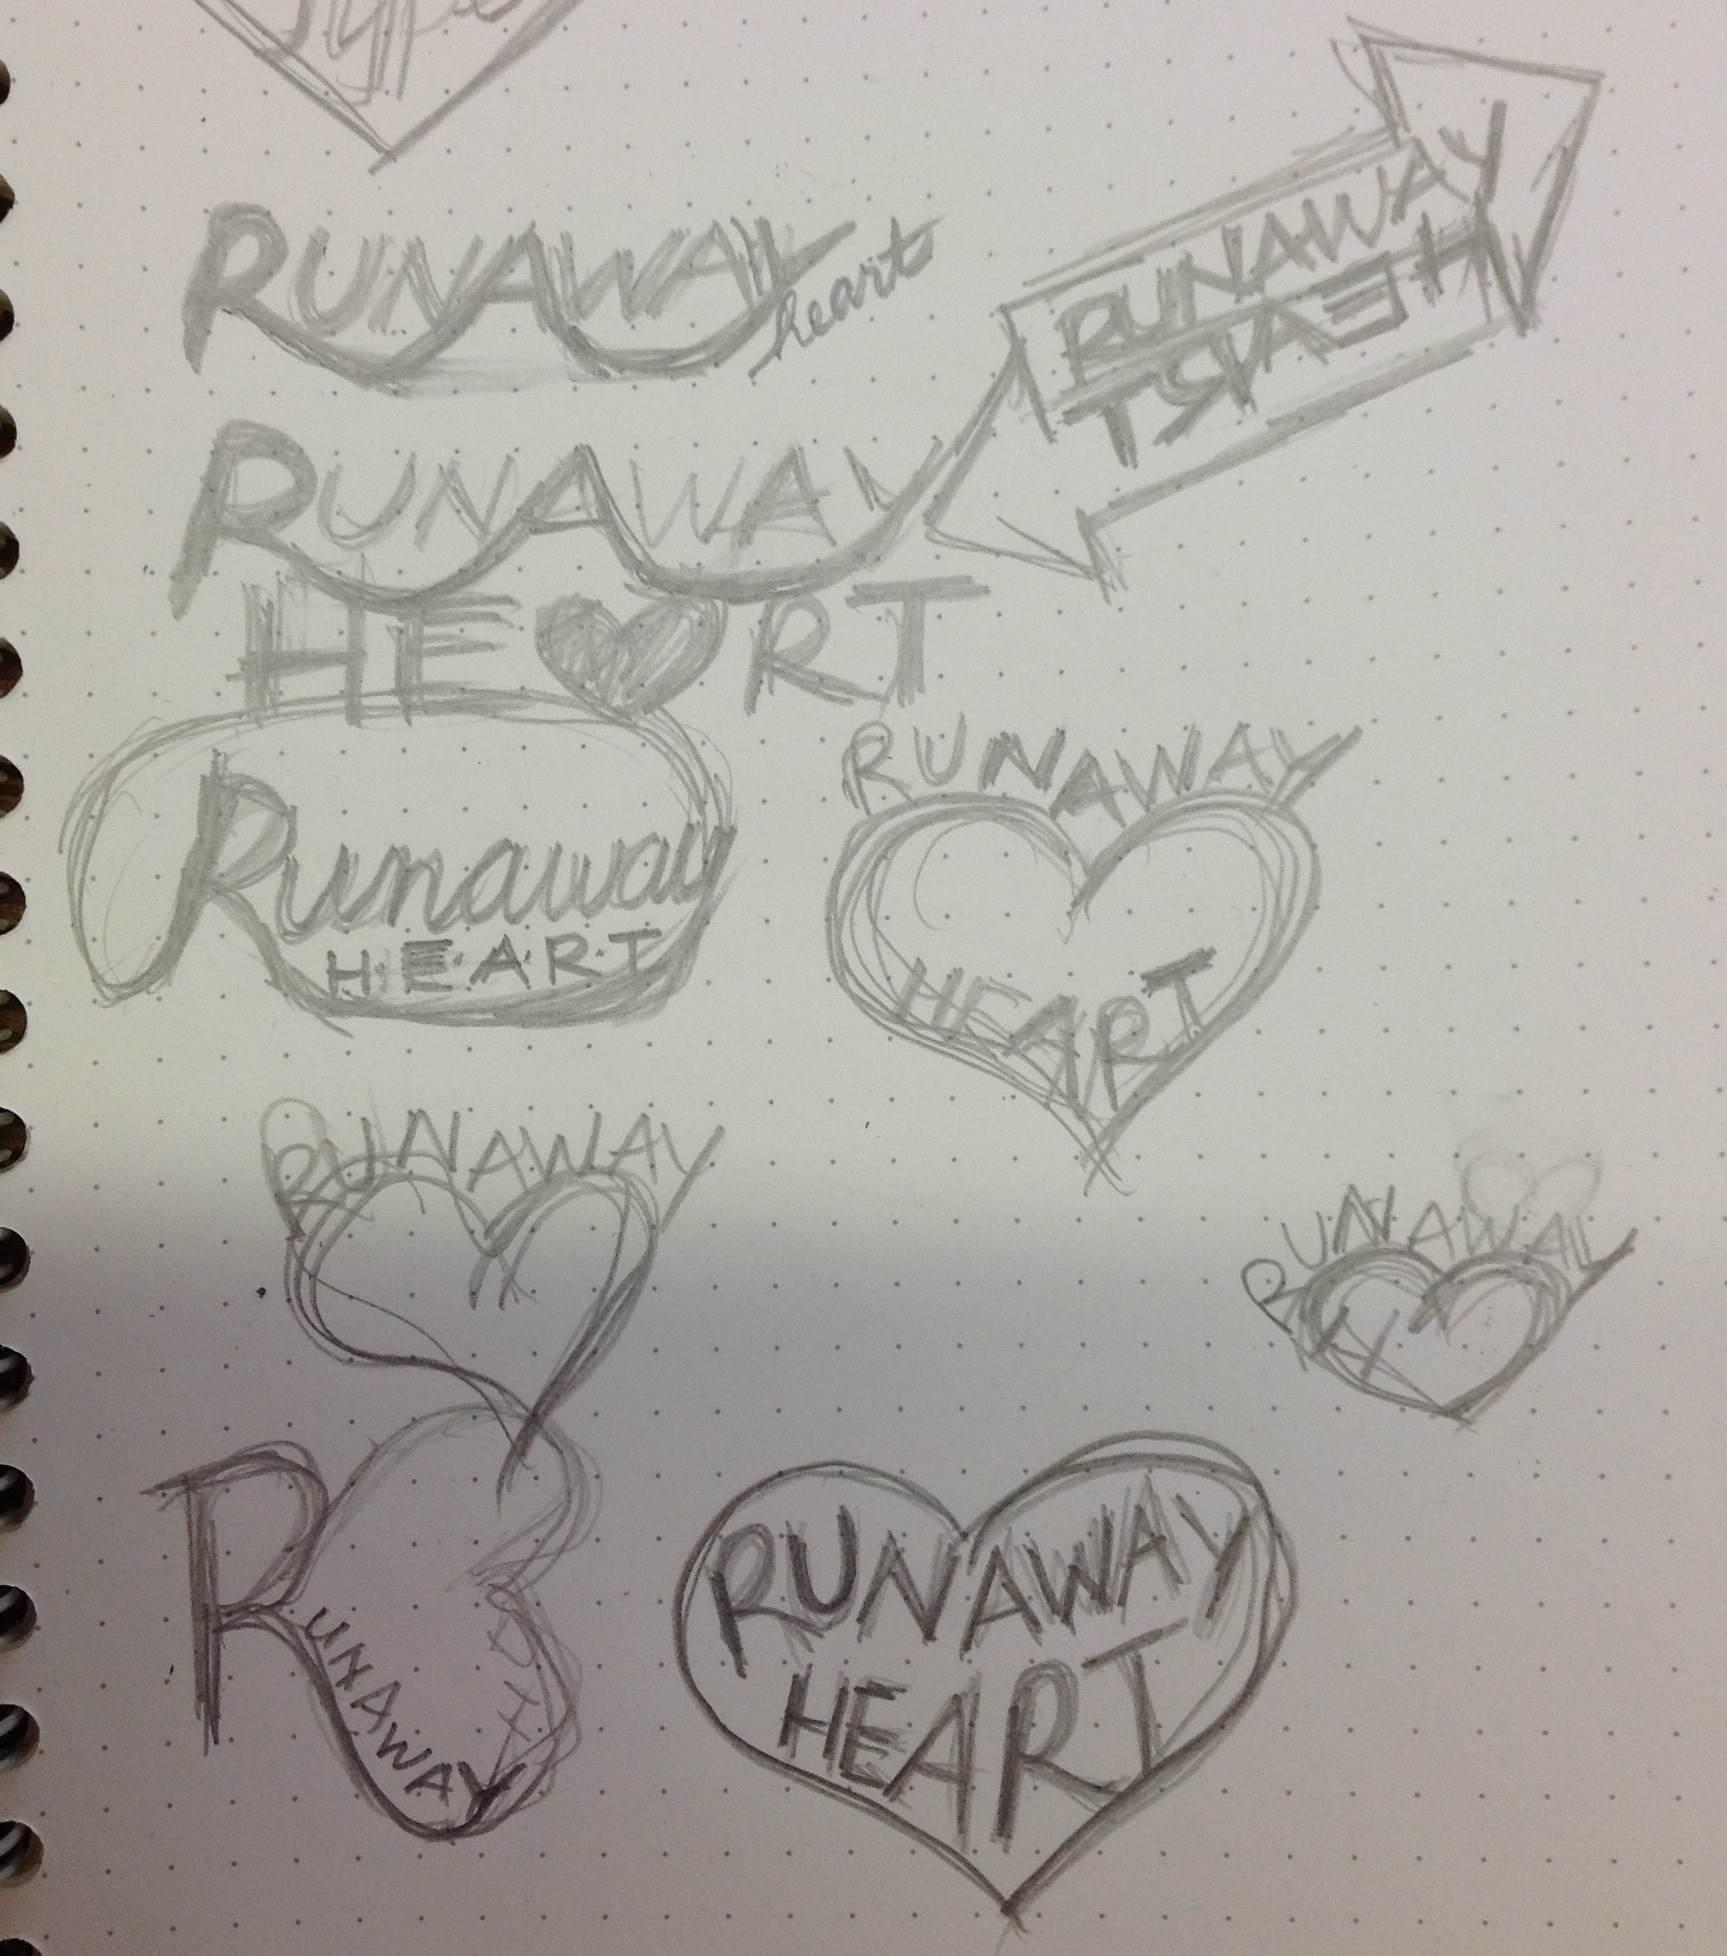 Runaway Heart - image 1 - student project